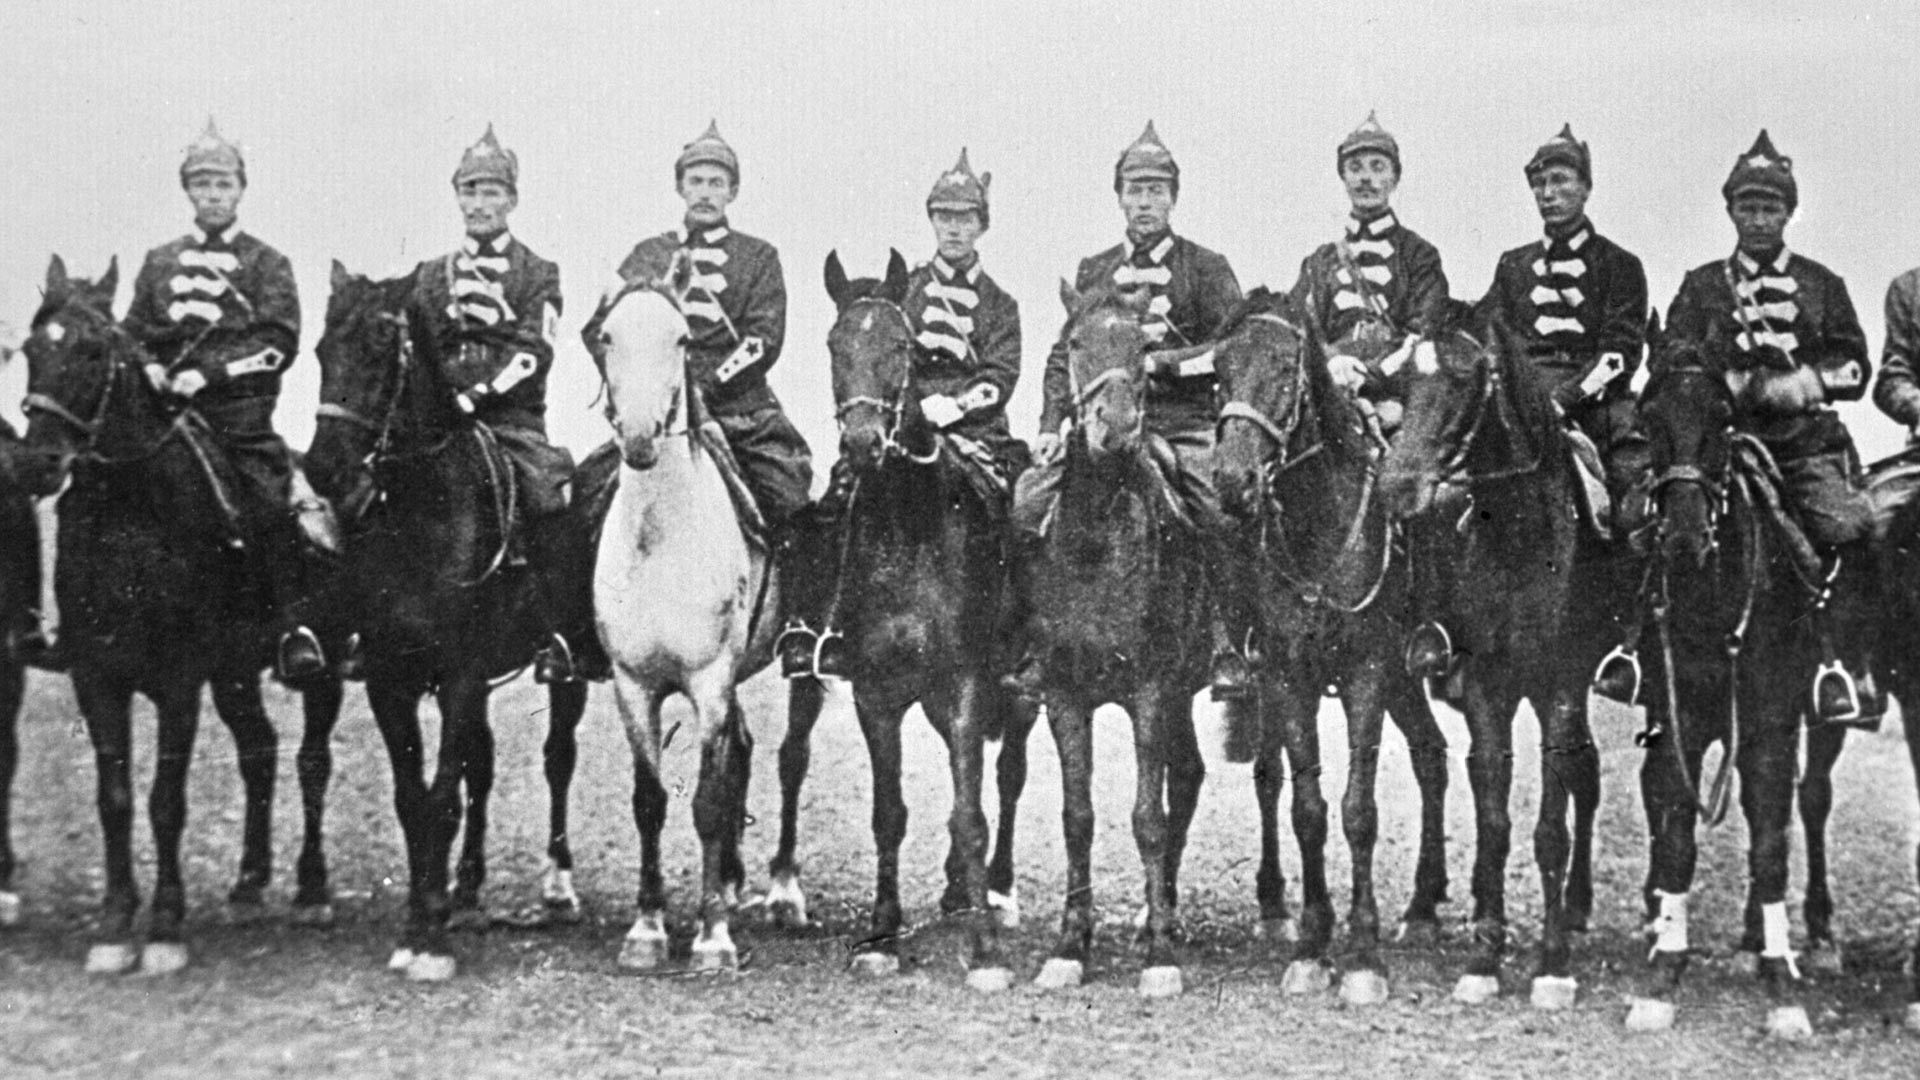 Commanders of the 1st Cavalry Army.